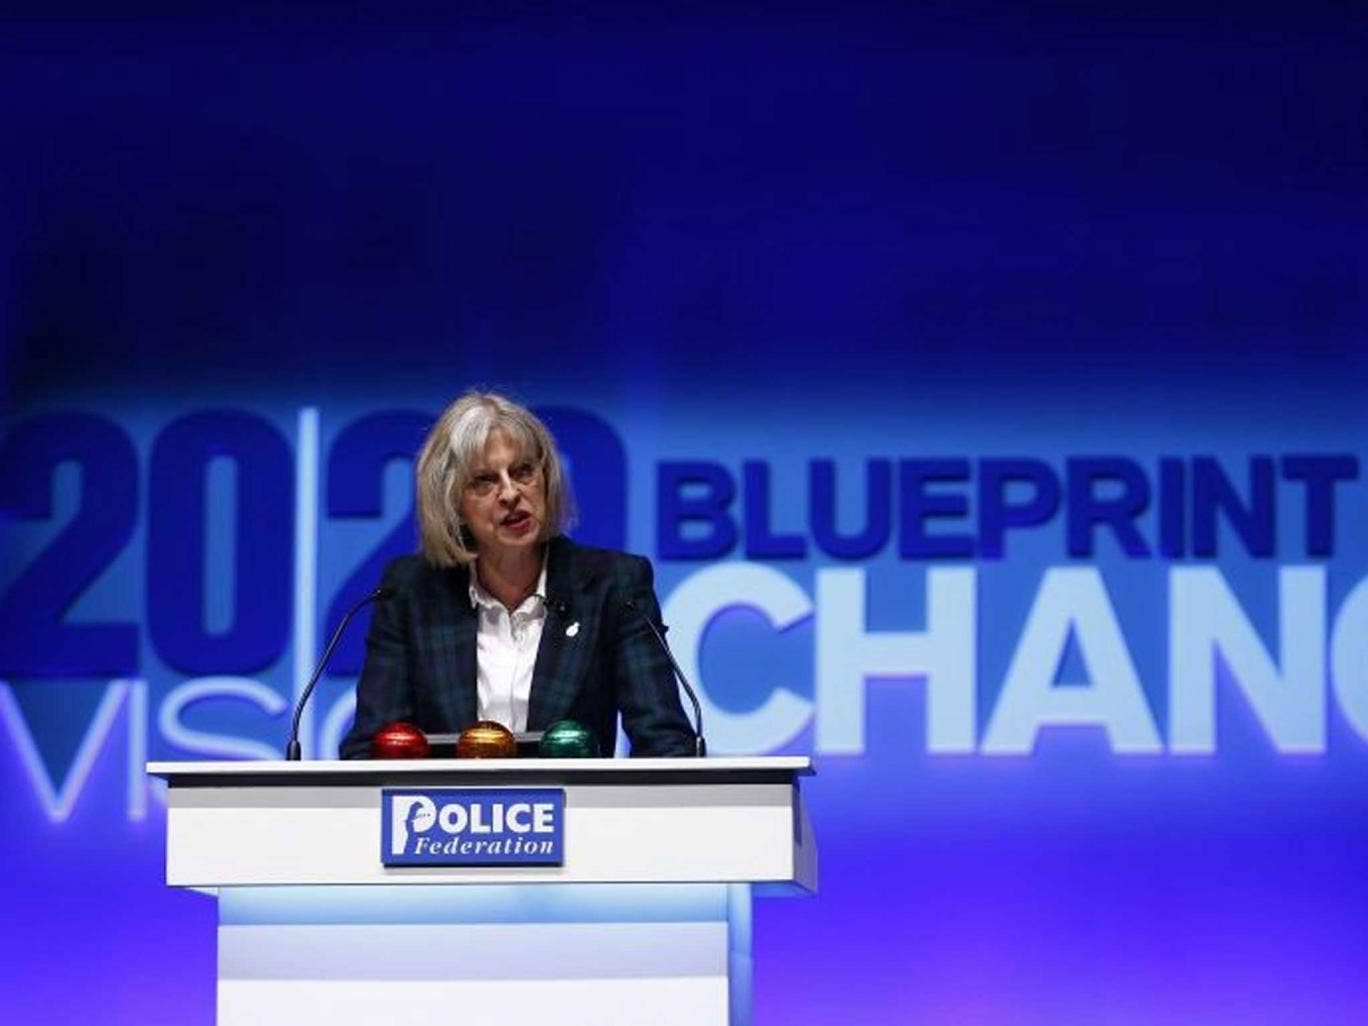 Theresa may speaking at the Police Federation